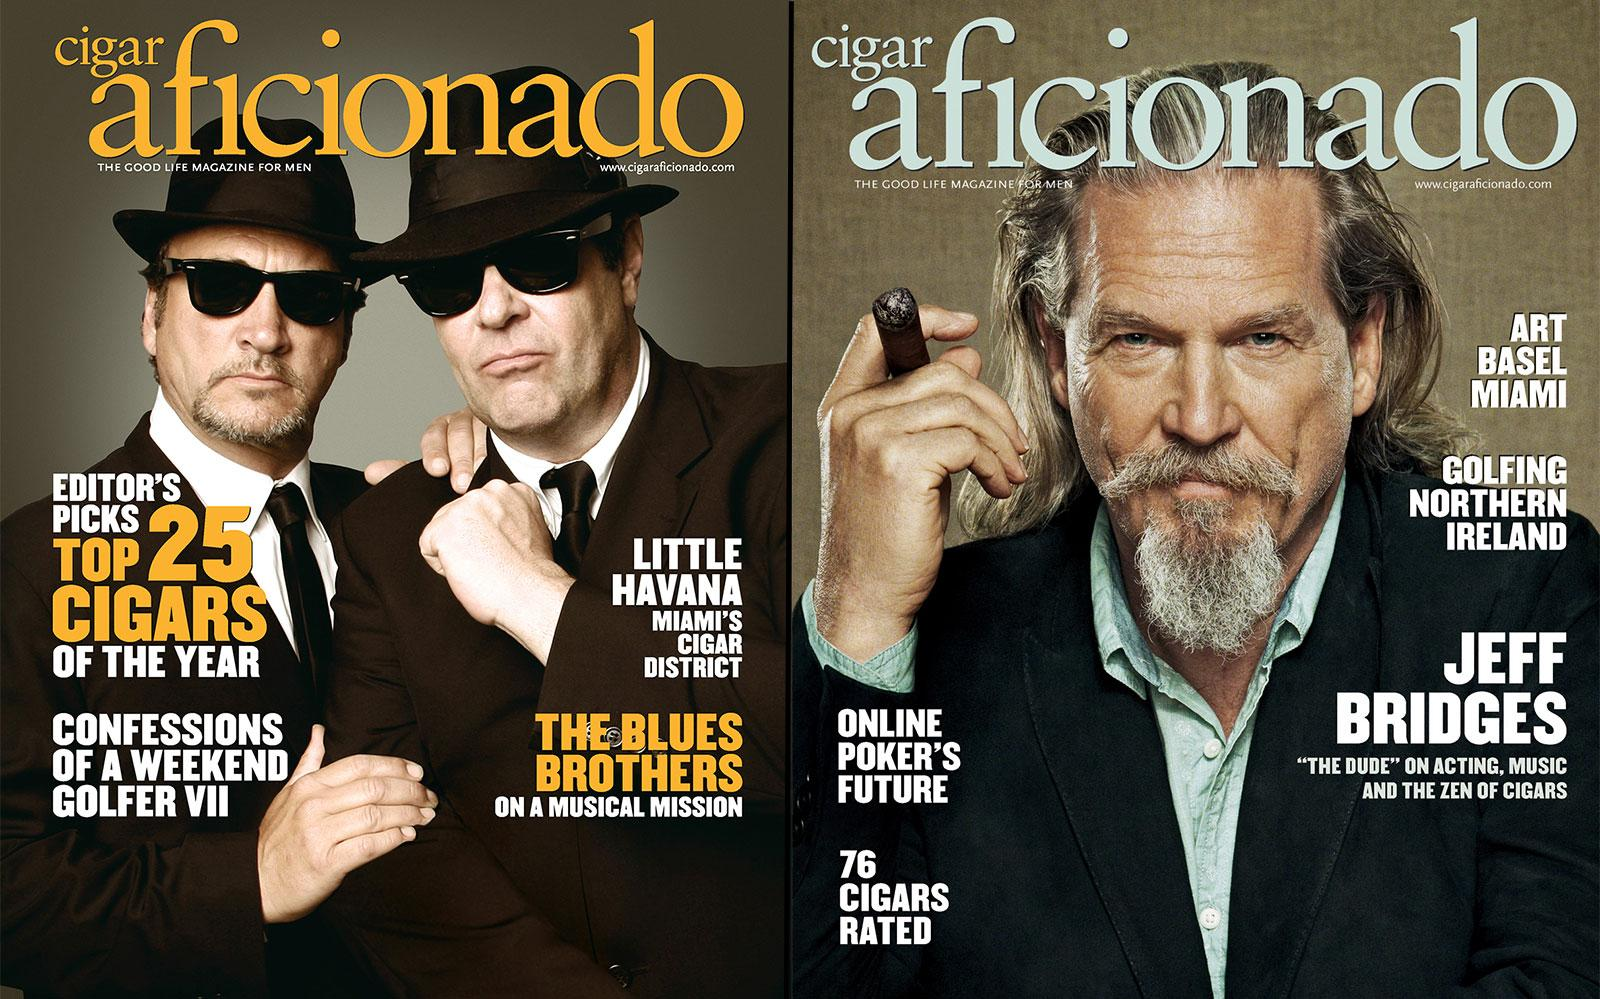 Round 2 pits The Blues Brothers (February 2008) against Jeff Bridges (August 2013) in a battle of the über-cool.